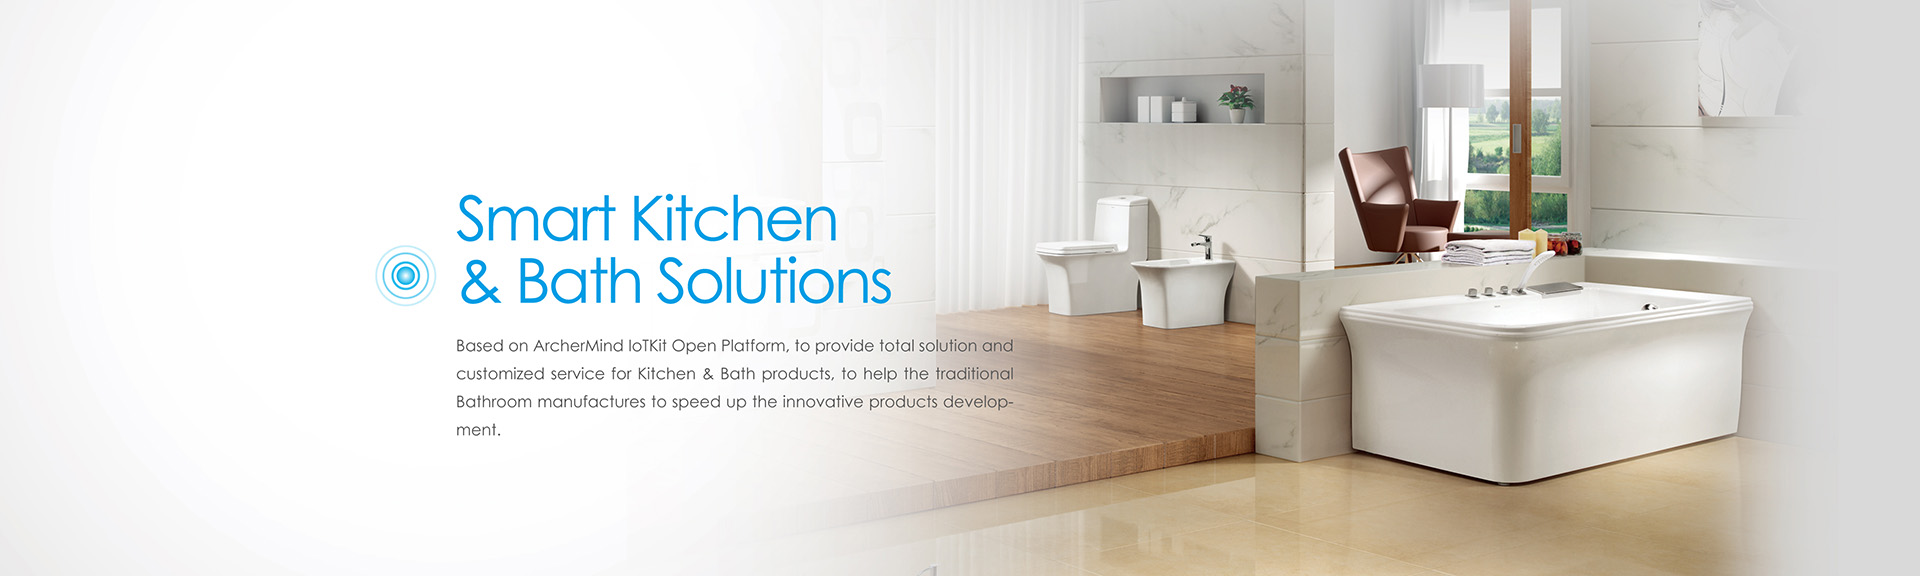 Kitchen bathroom solutions - Device Management